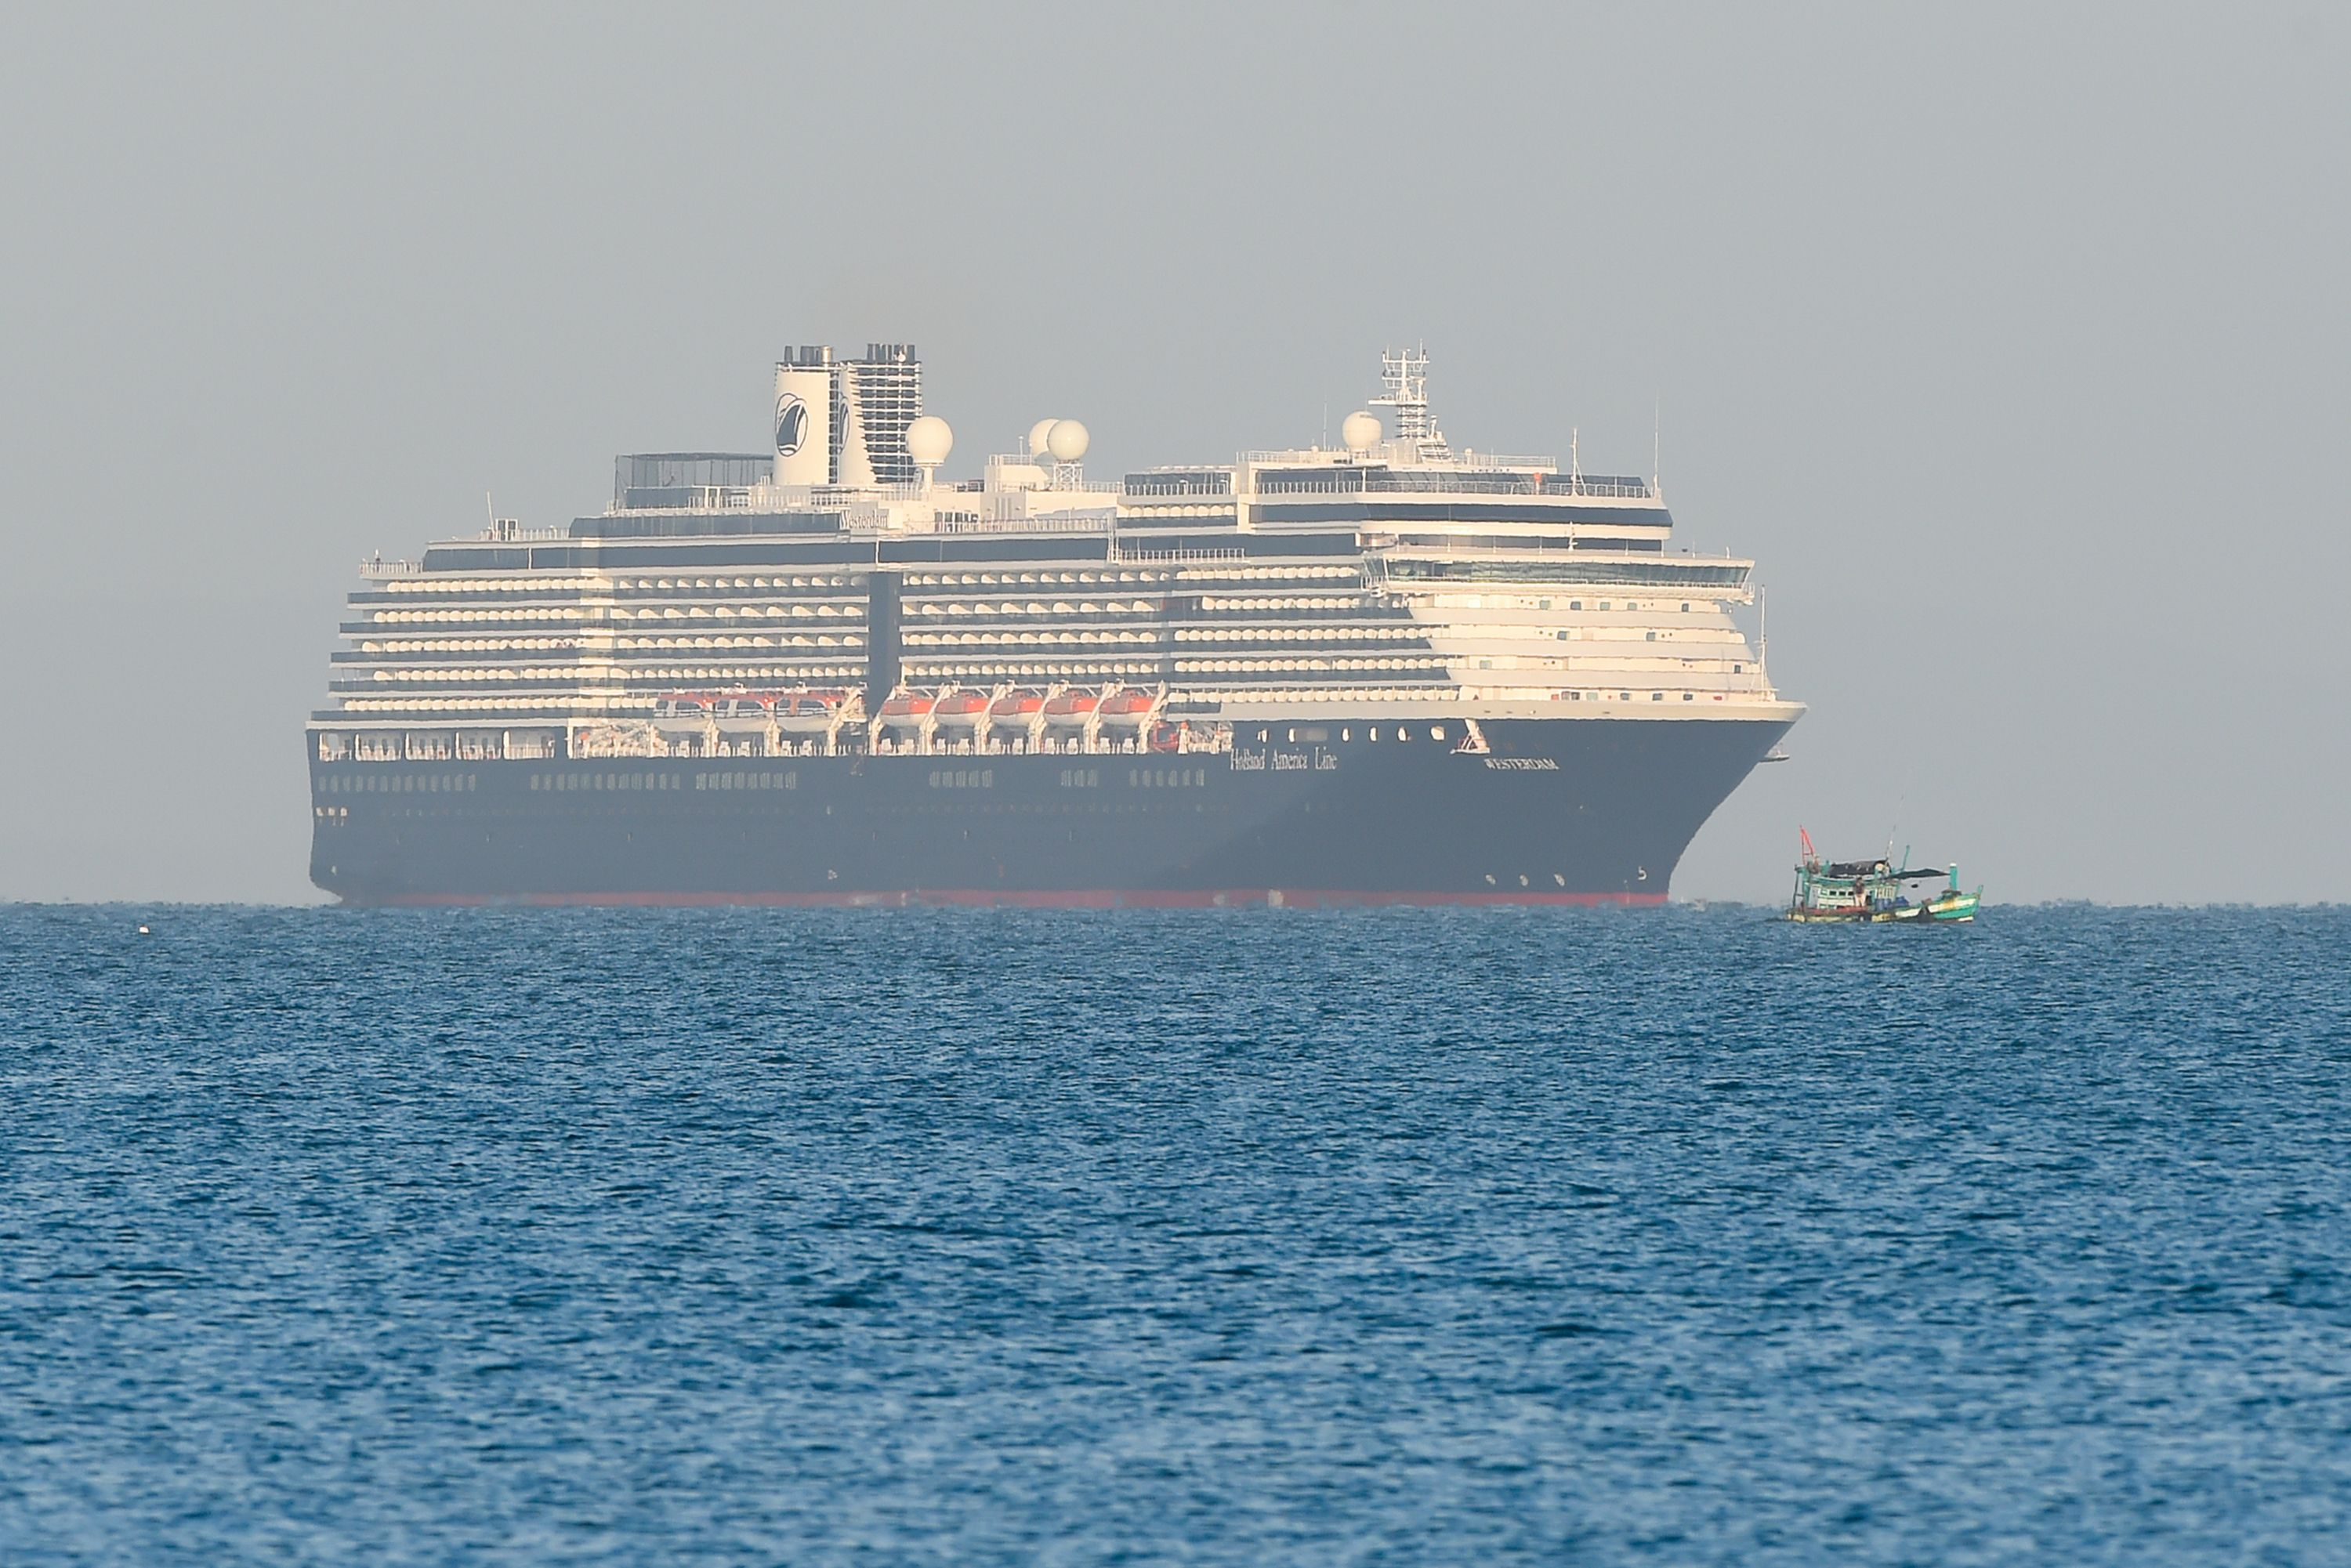 The Westerdam cruise ship approaches port in Sihanoukville, on Cambodia's southern coast where the liner had received permission to dock.